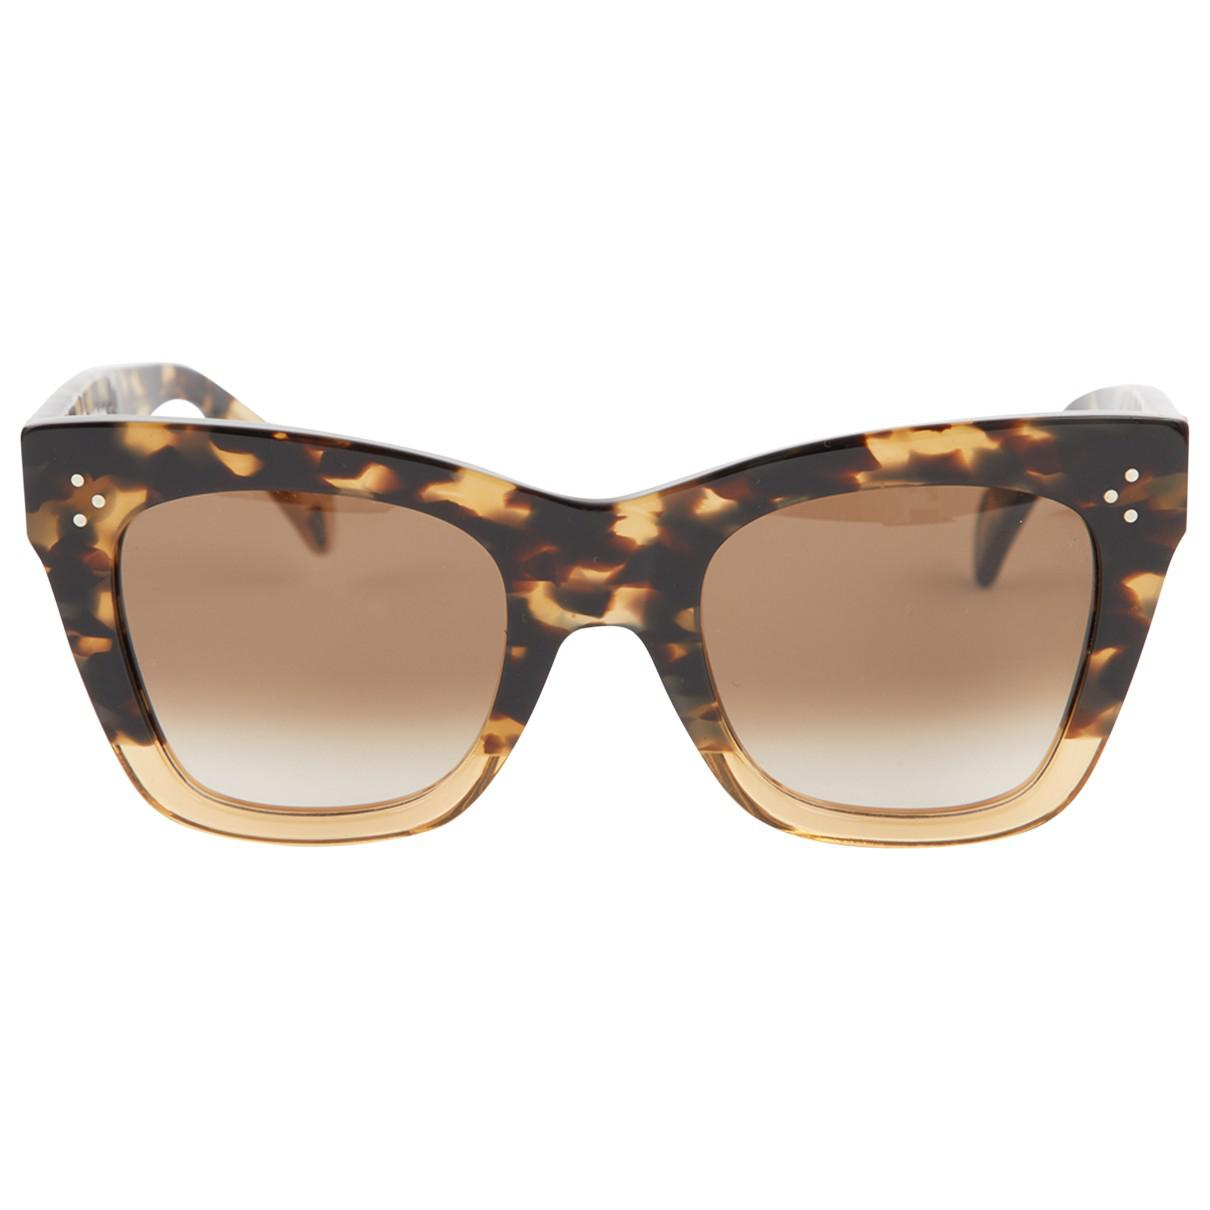 42773f34273b Lyst - Céline Pre-owned Oversized Sunglasses in Brown